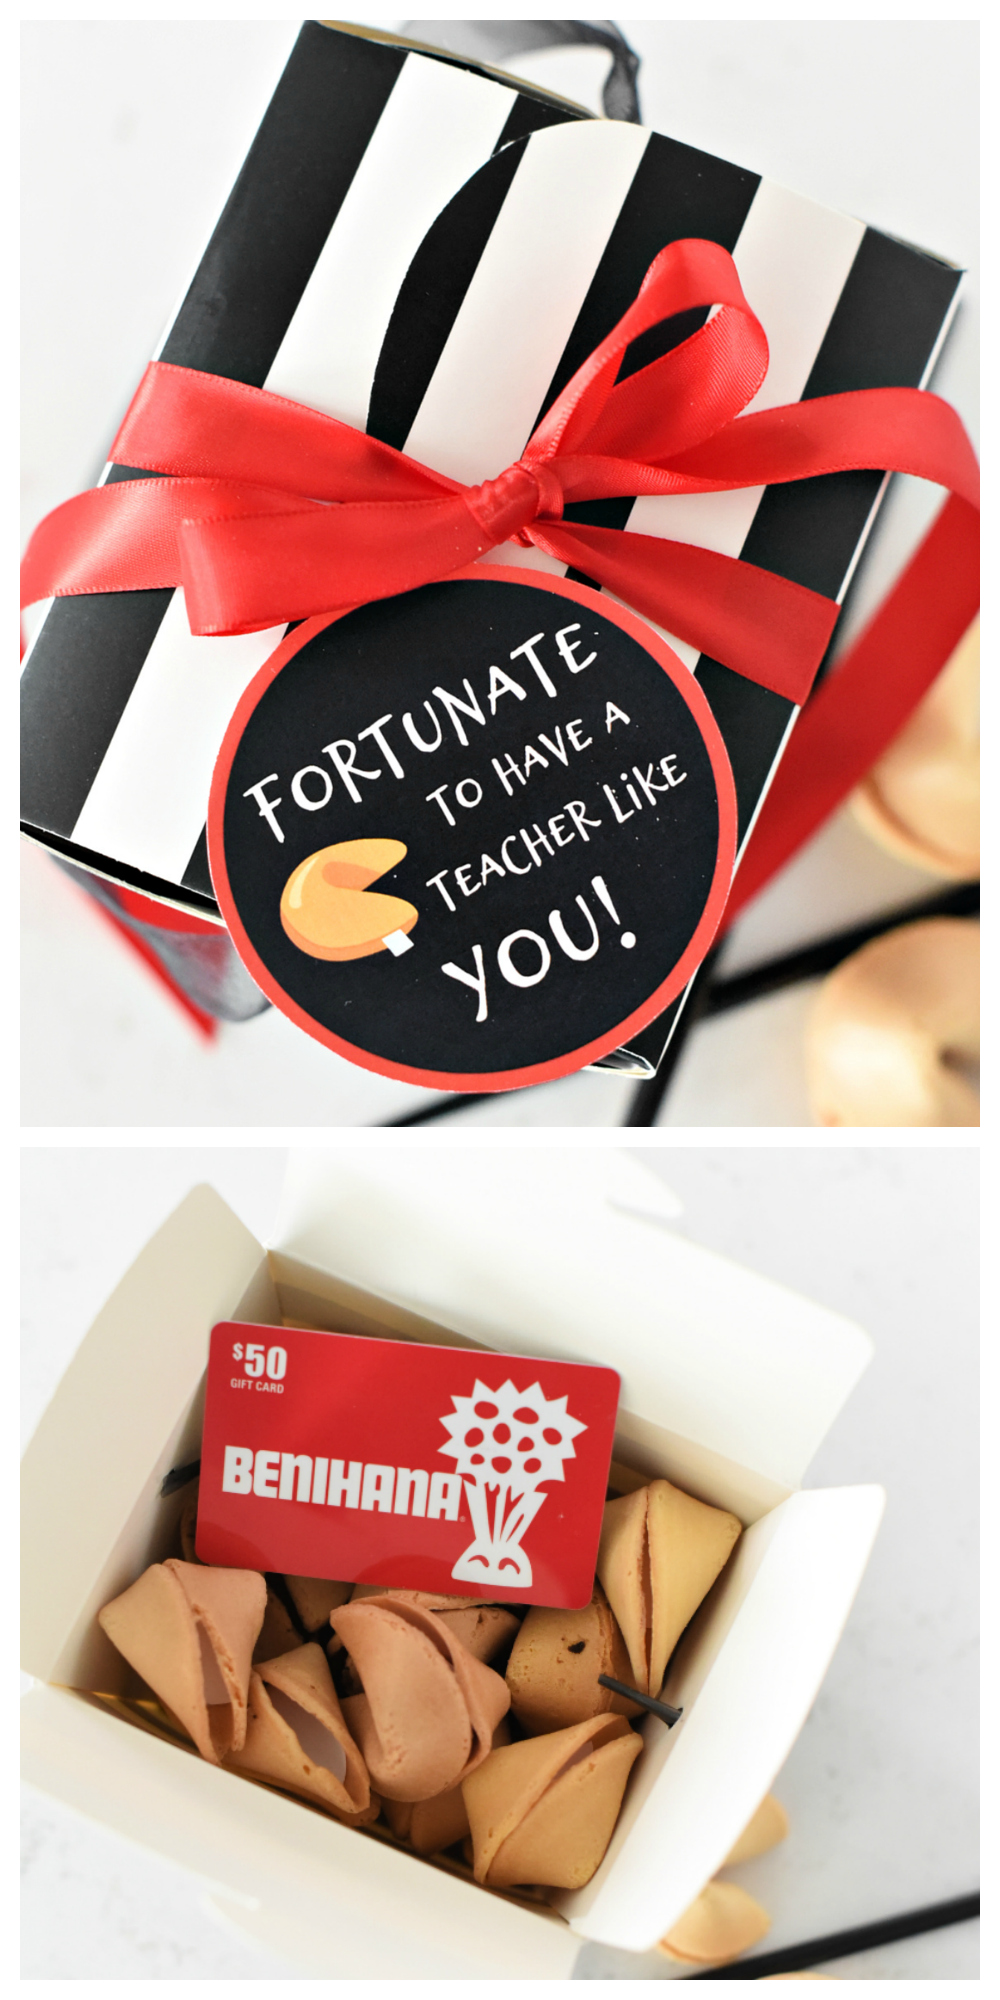 Fortunate to Have a Teacher Like You Gift Idea-Fill a cute take-out box with fortune cookies and a gift card and you've got a fun and easy teacher gift idea! #teacherappreciation #teachergifts #giftideas #teacherappreciationweek